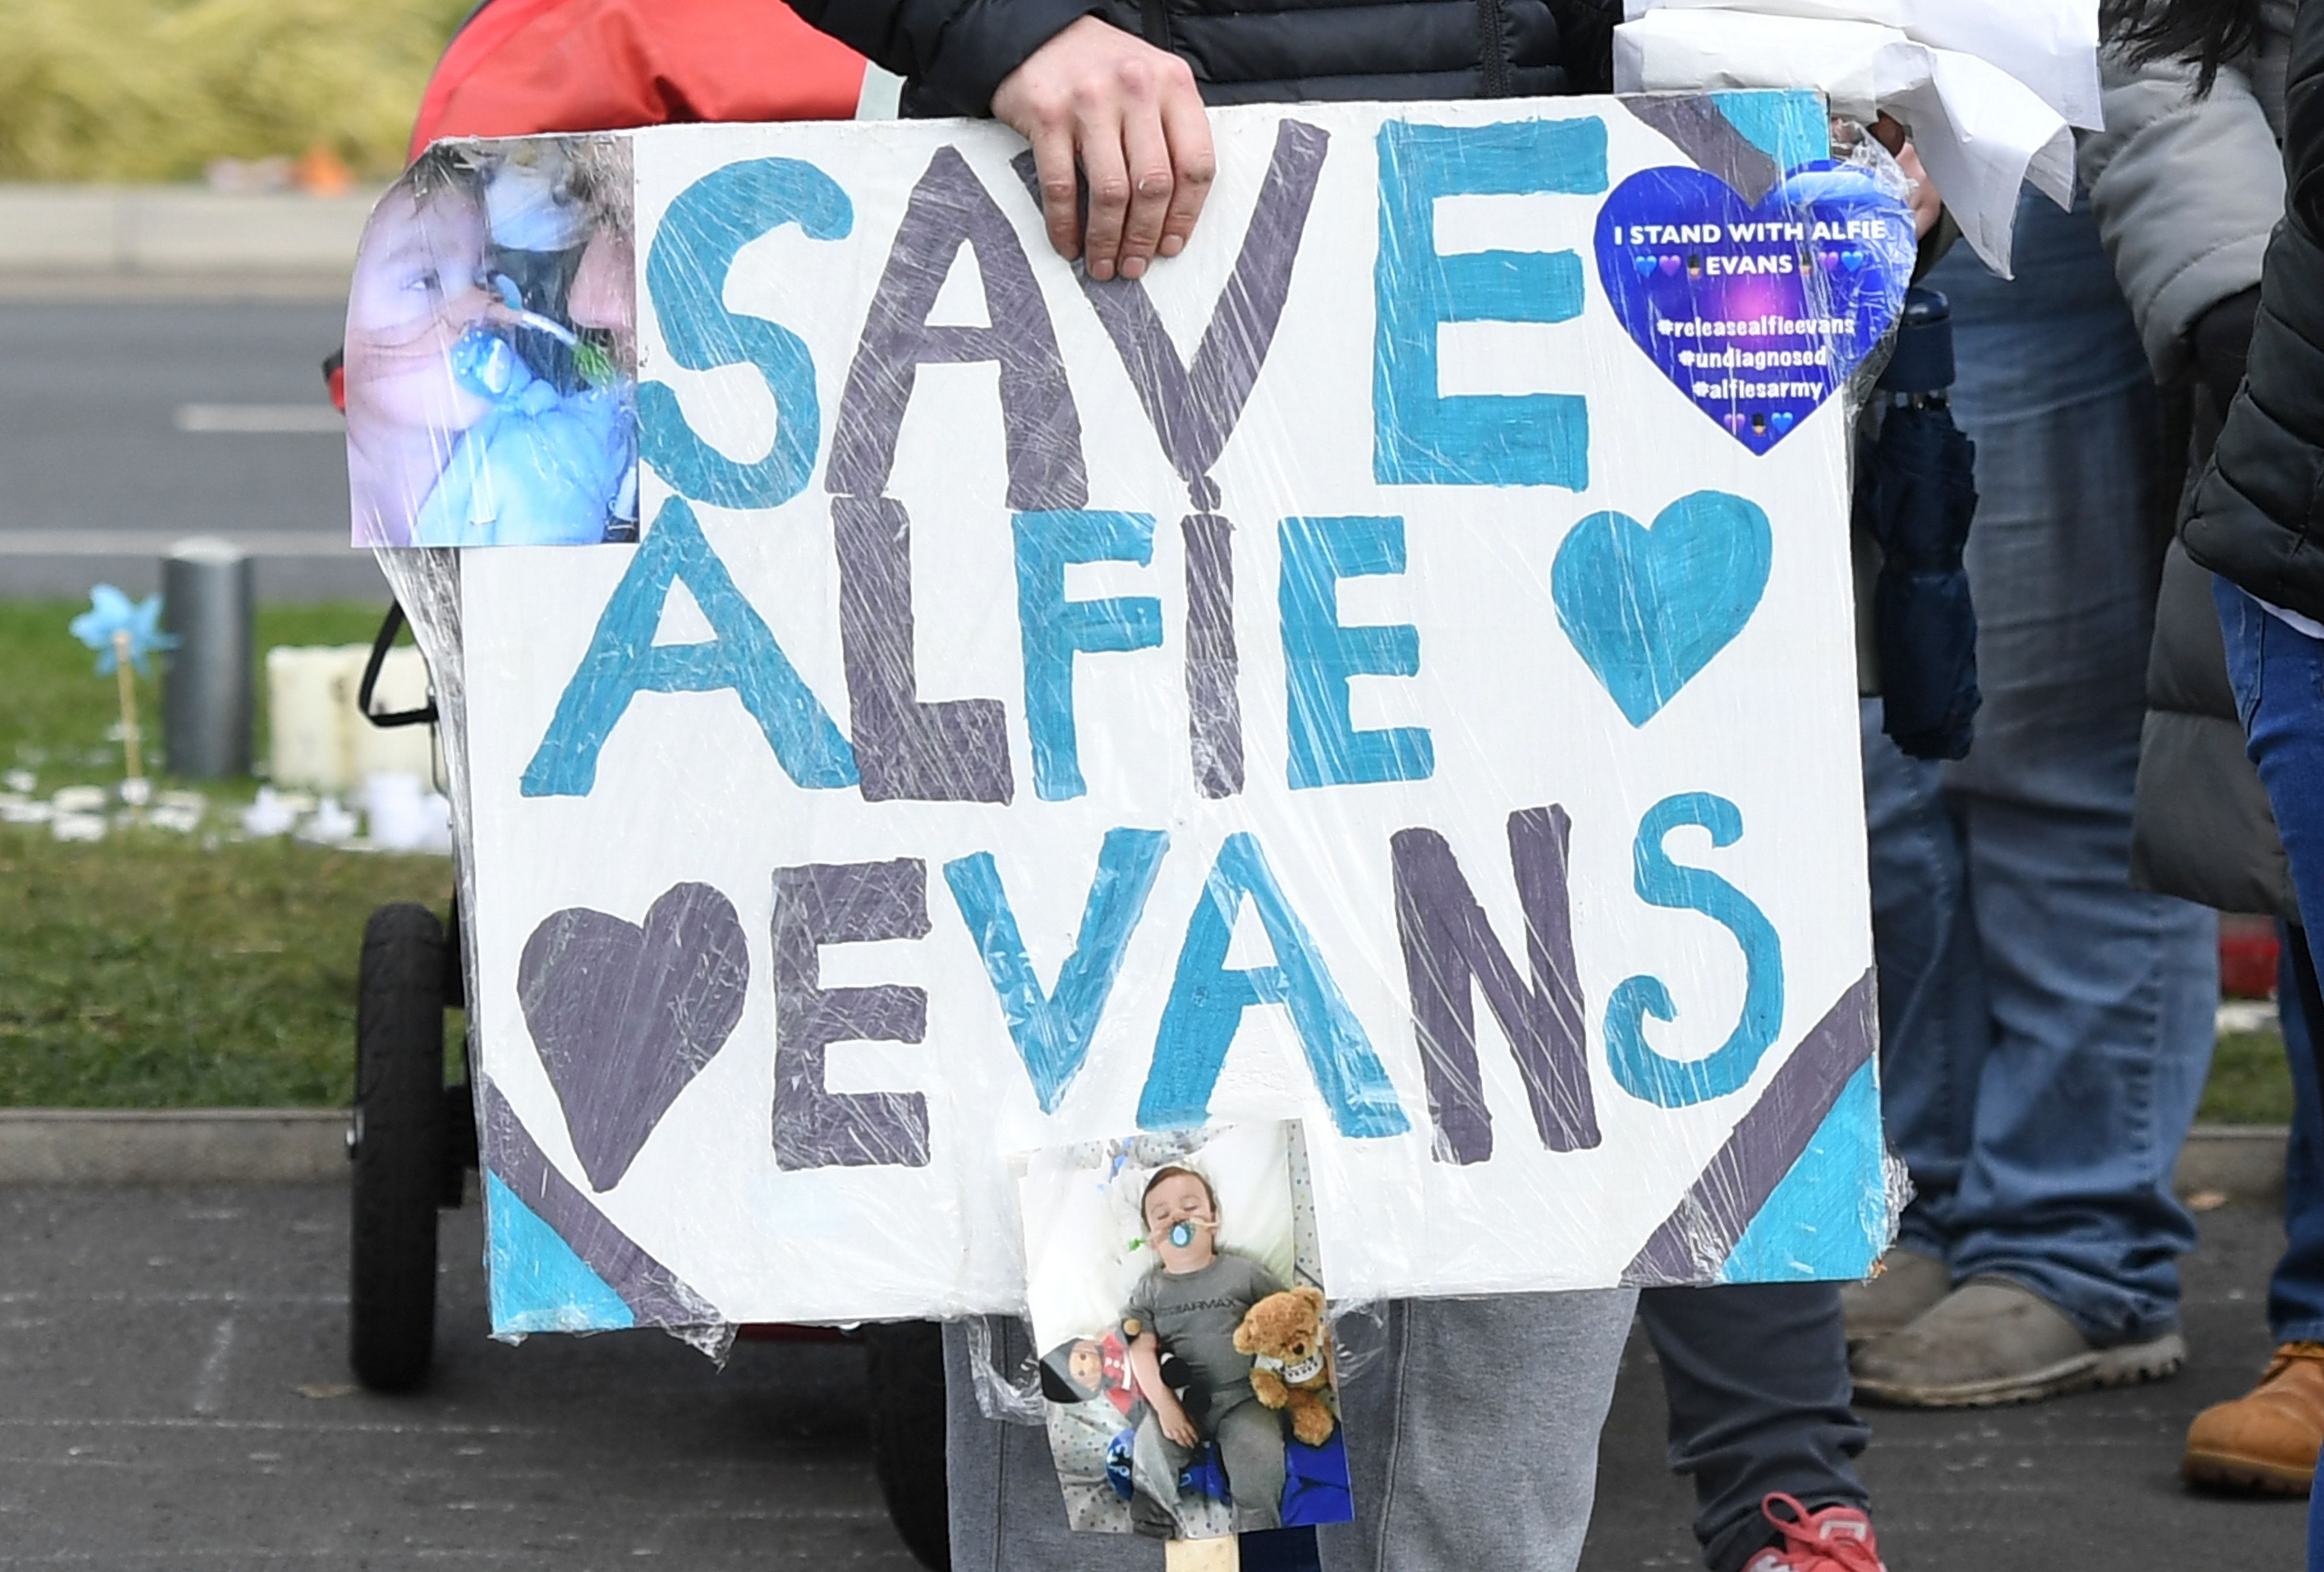 Supporters of seriously ill British toddler Alfie Evans demonstrate outside Alder Hey Children's Hospital in Liverpool, England, on April 16, 2018 as Court of Appeal